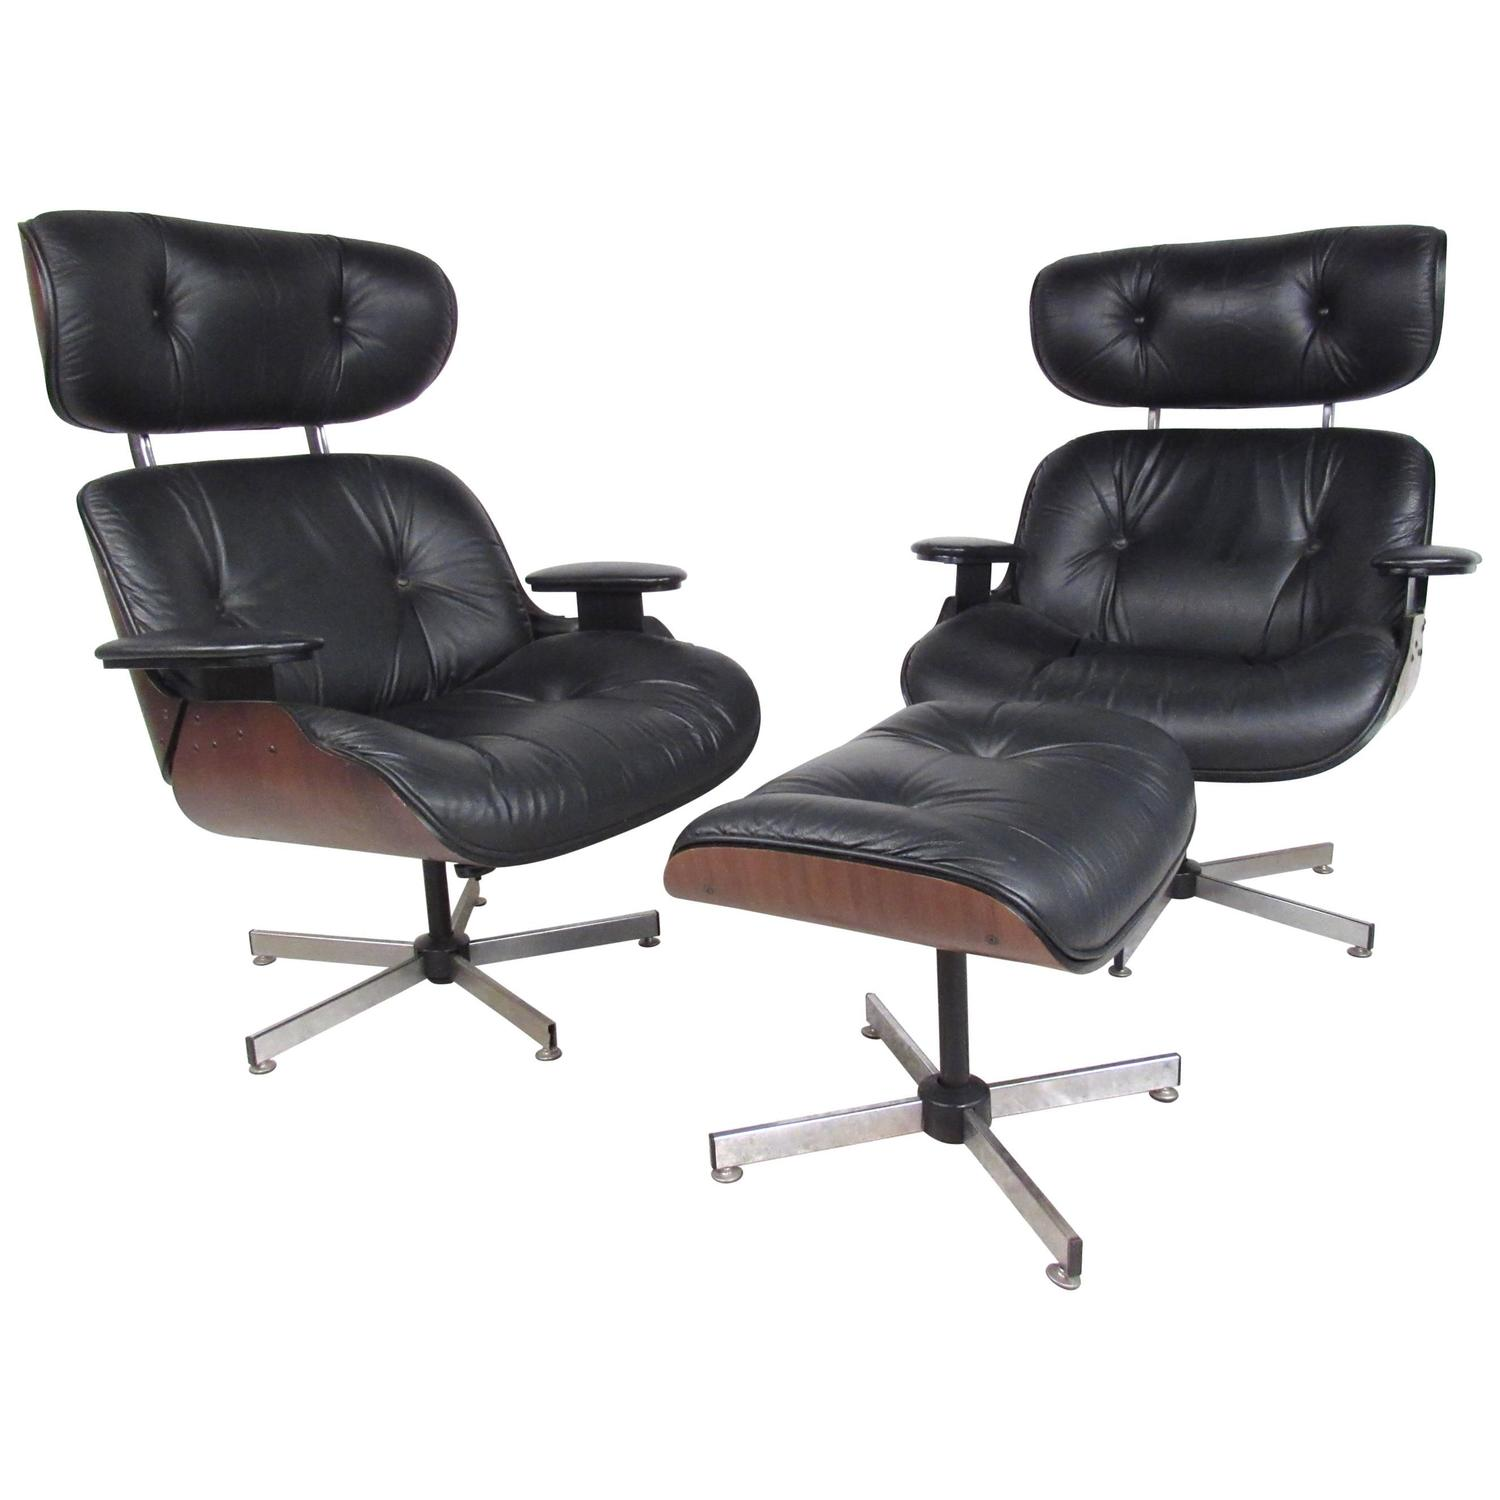 pair of mid century modern eames style lounge chairs by plycraft furniture chairs ply white bedroombreathtaking eames office chair chairs